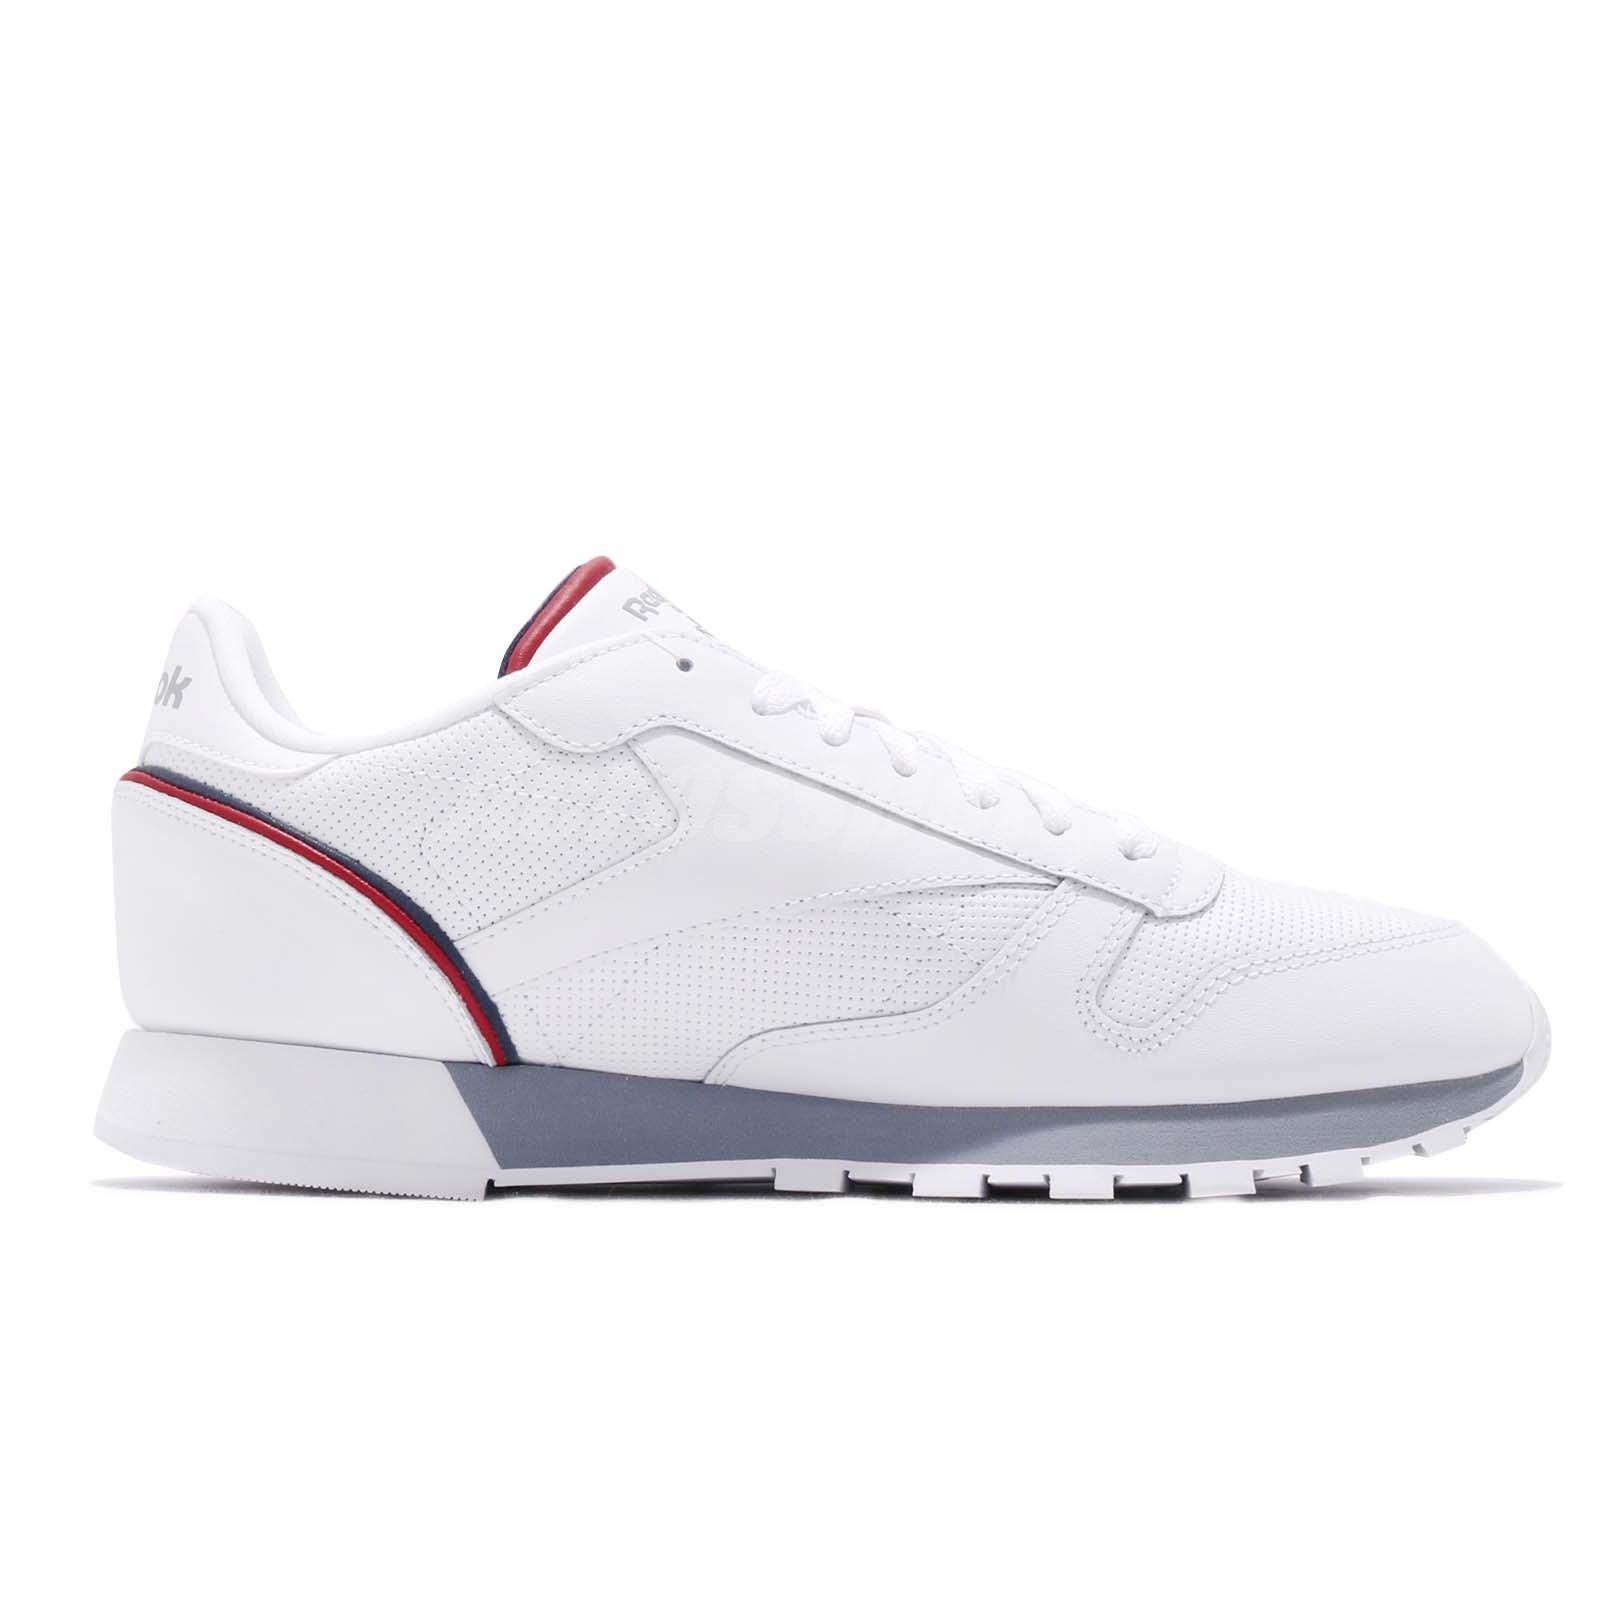 2236ca9fded Reebok CL Leather MU White Navy Red Men Classic Casual Shoes ...